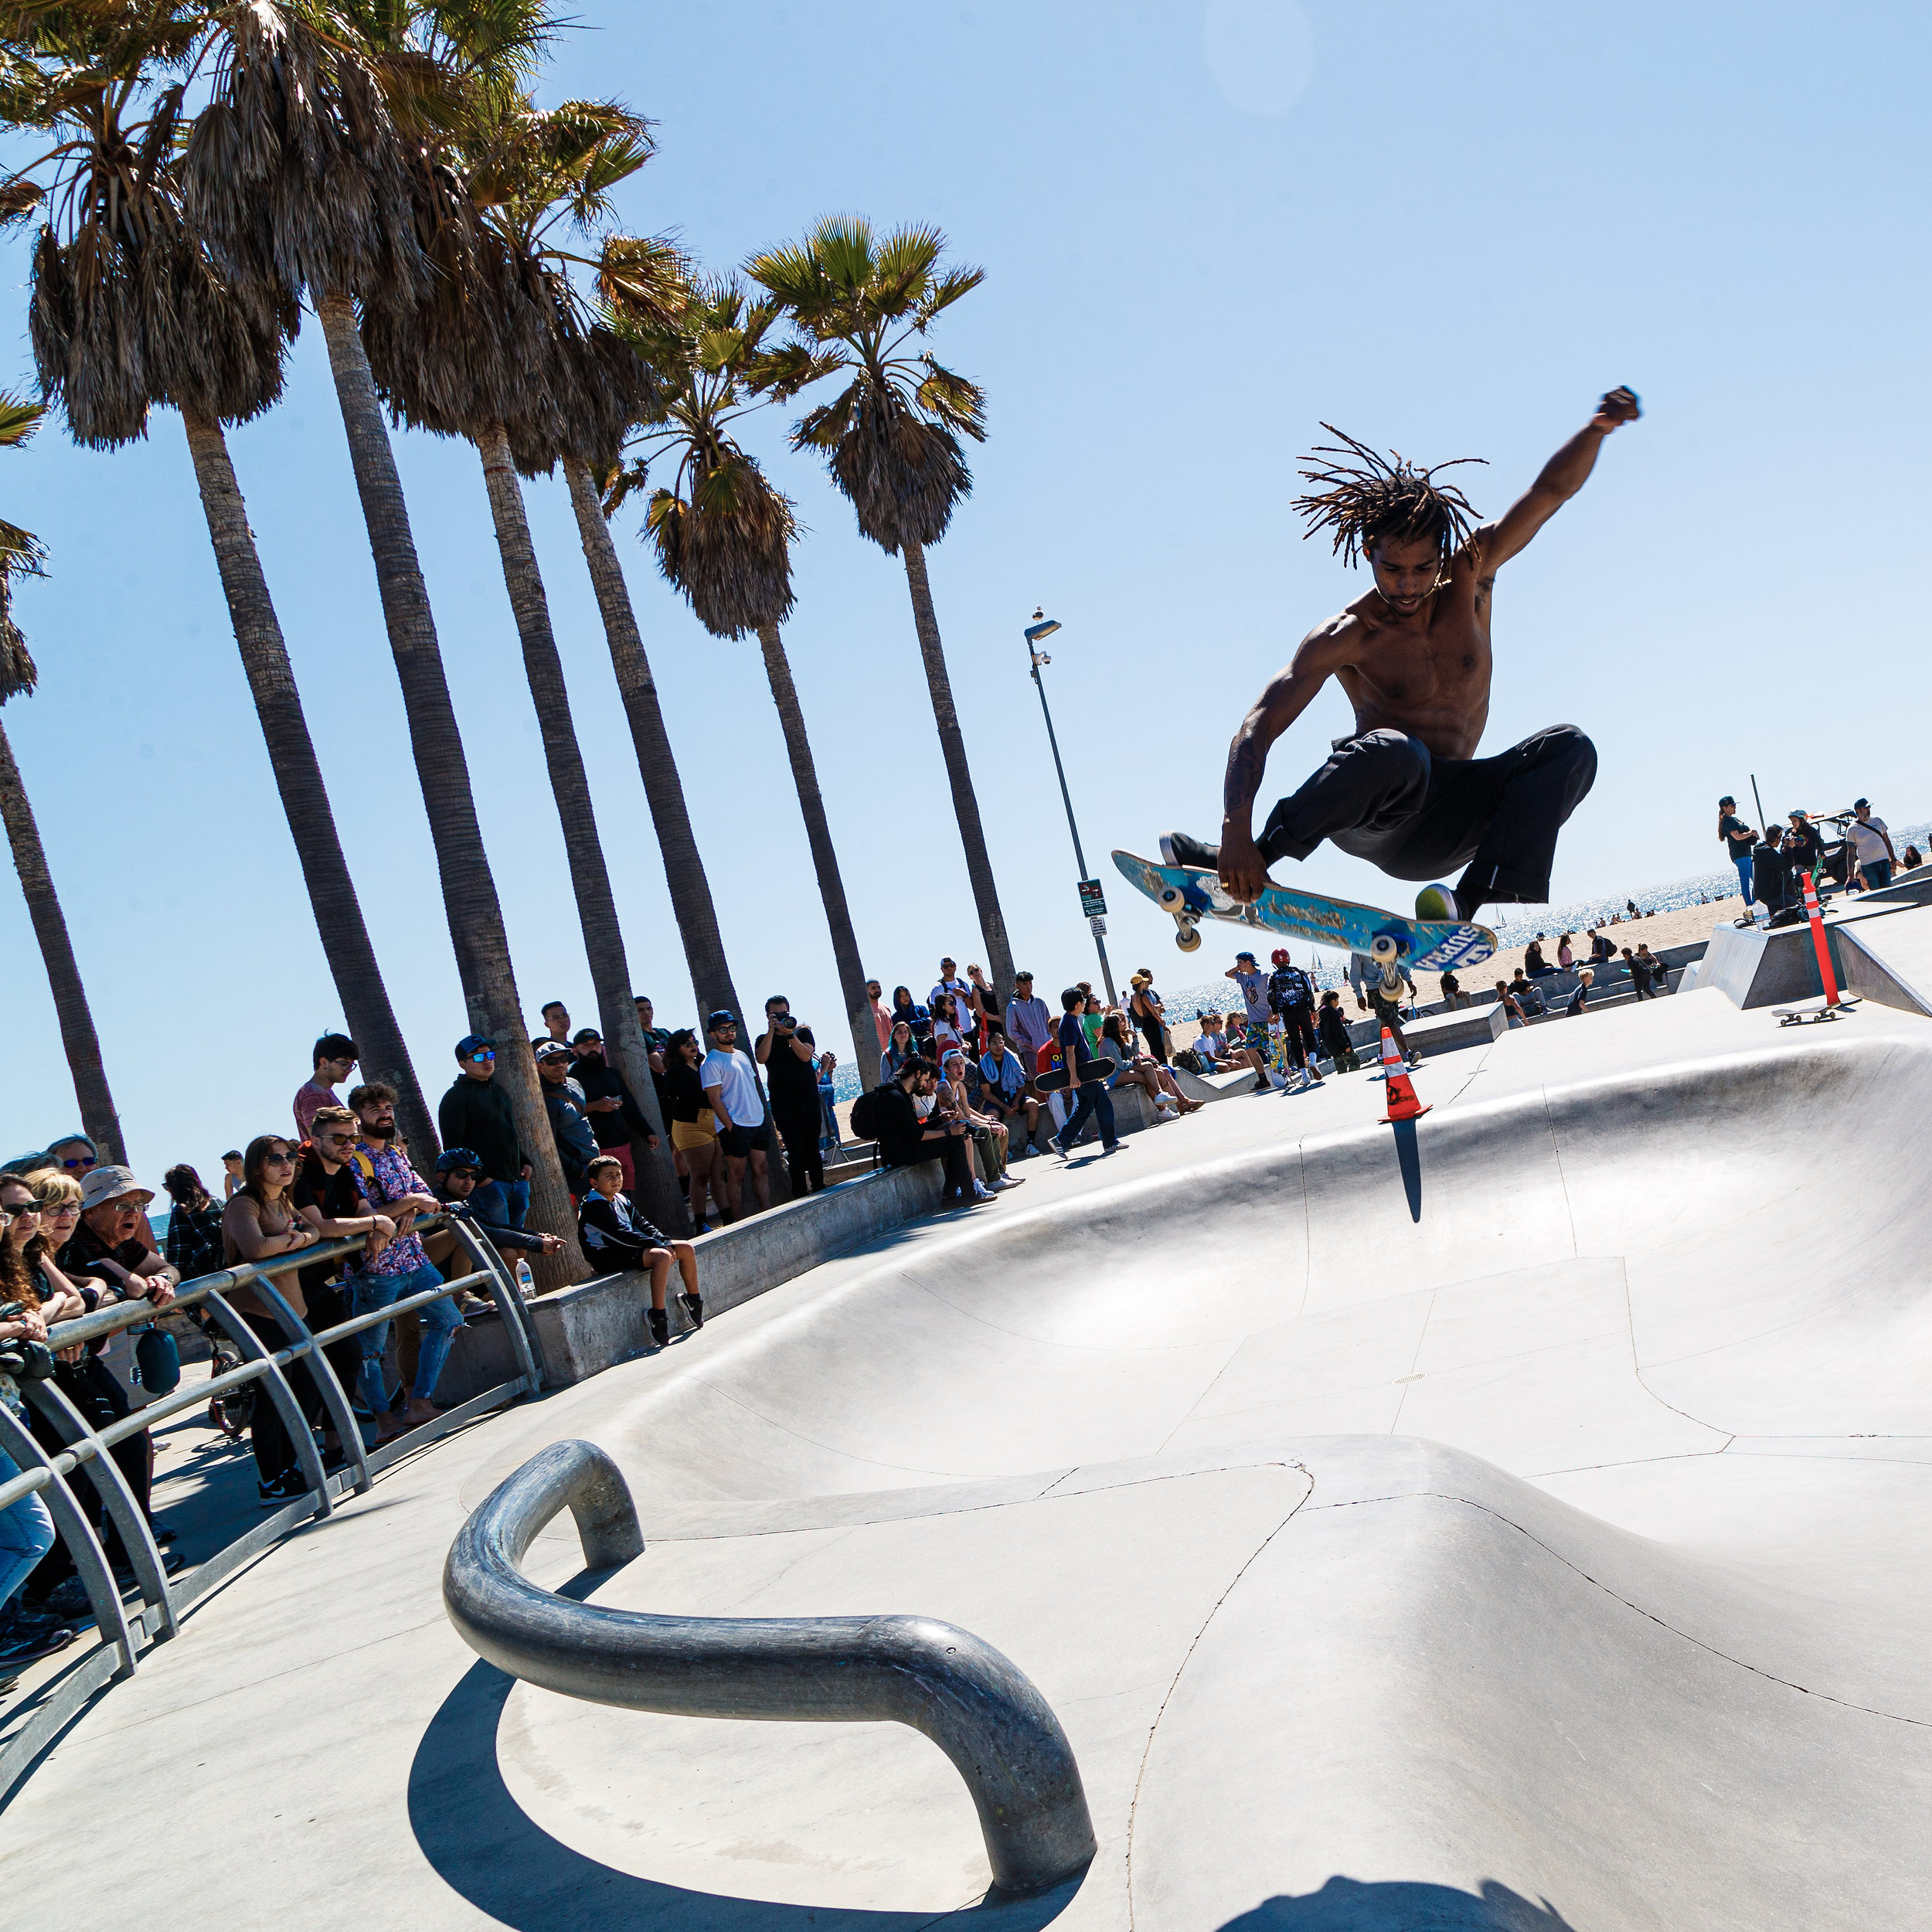 A skateboarder soars through the air at Venice Beach Skate Park on May 27, 2019 in Venice Beach, Calif. (Photo by Bryan Bennett)